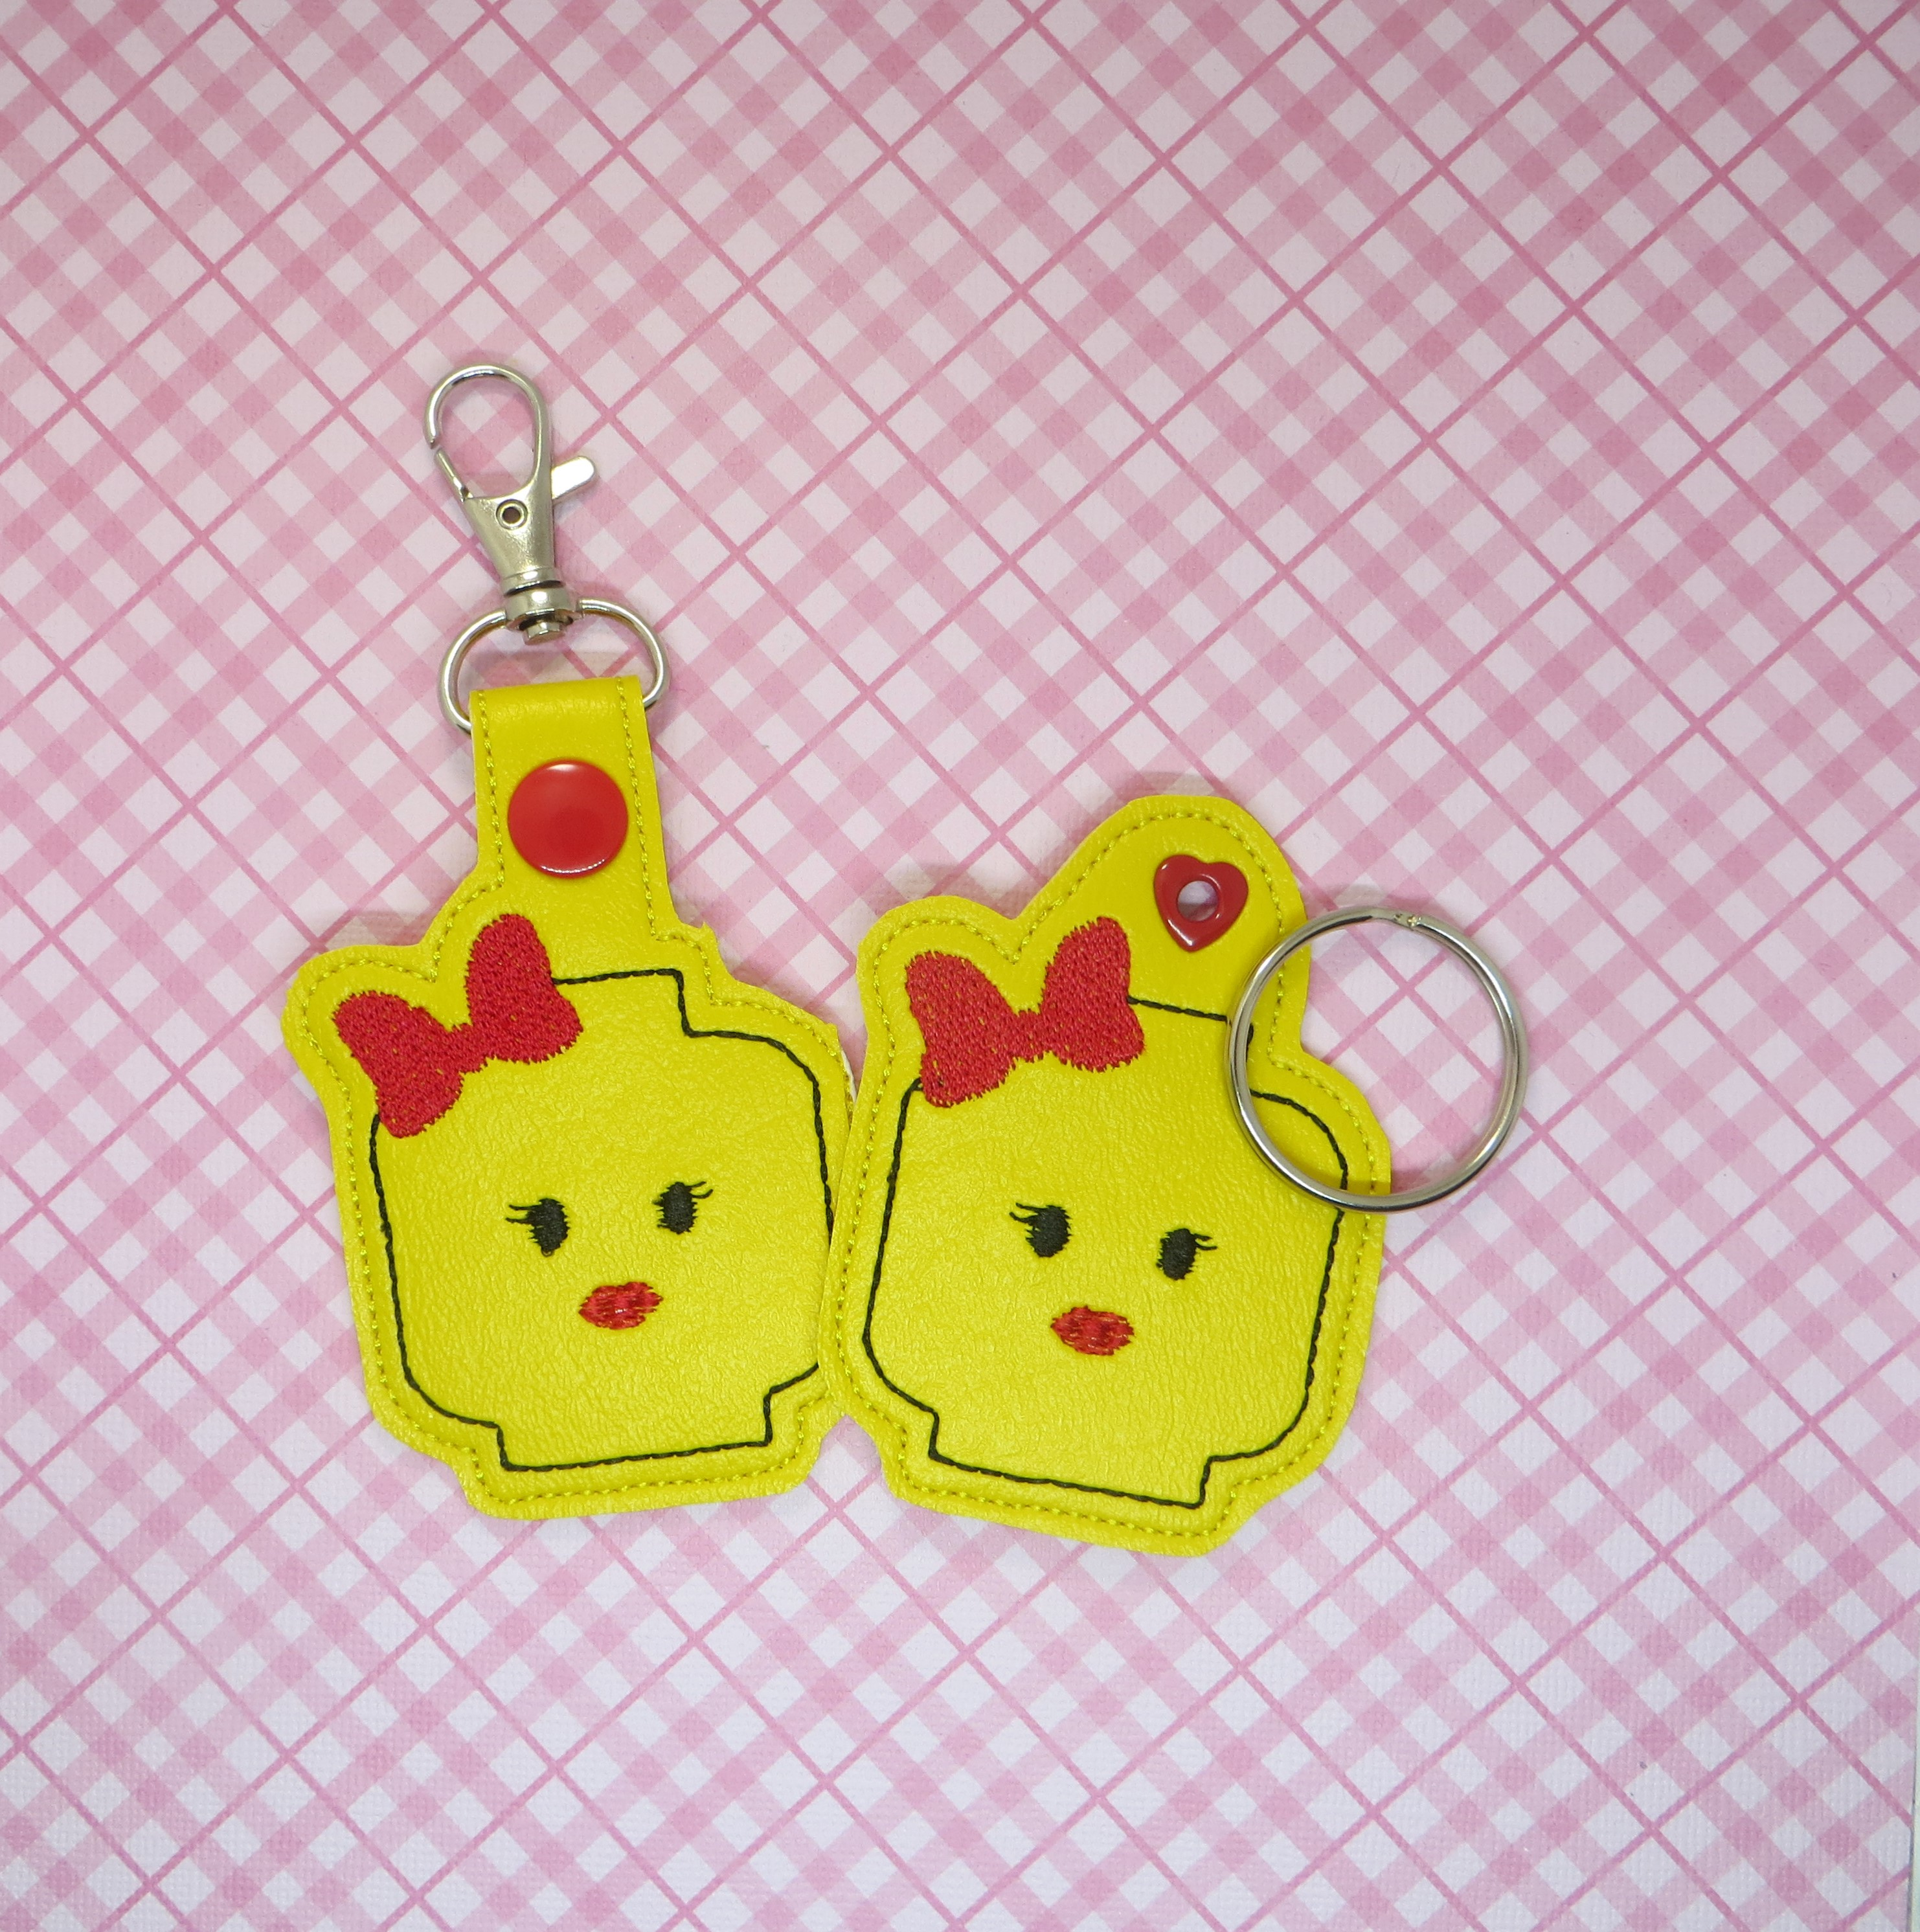 Block Girl Snaptab / Keyfob Embroidery Design